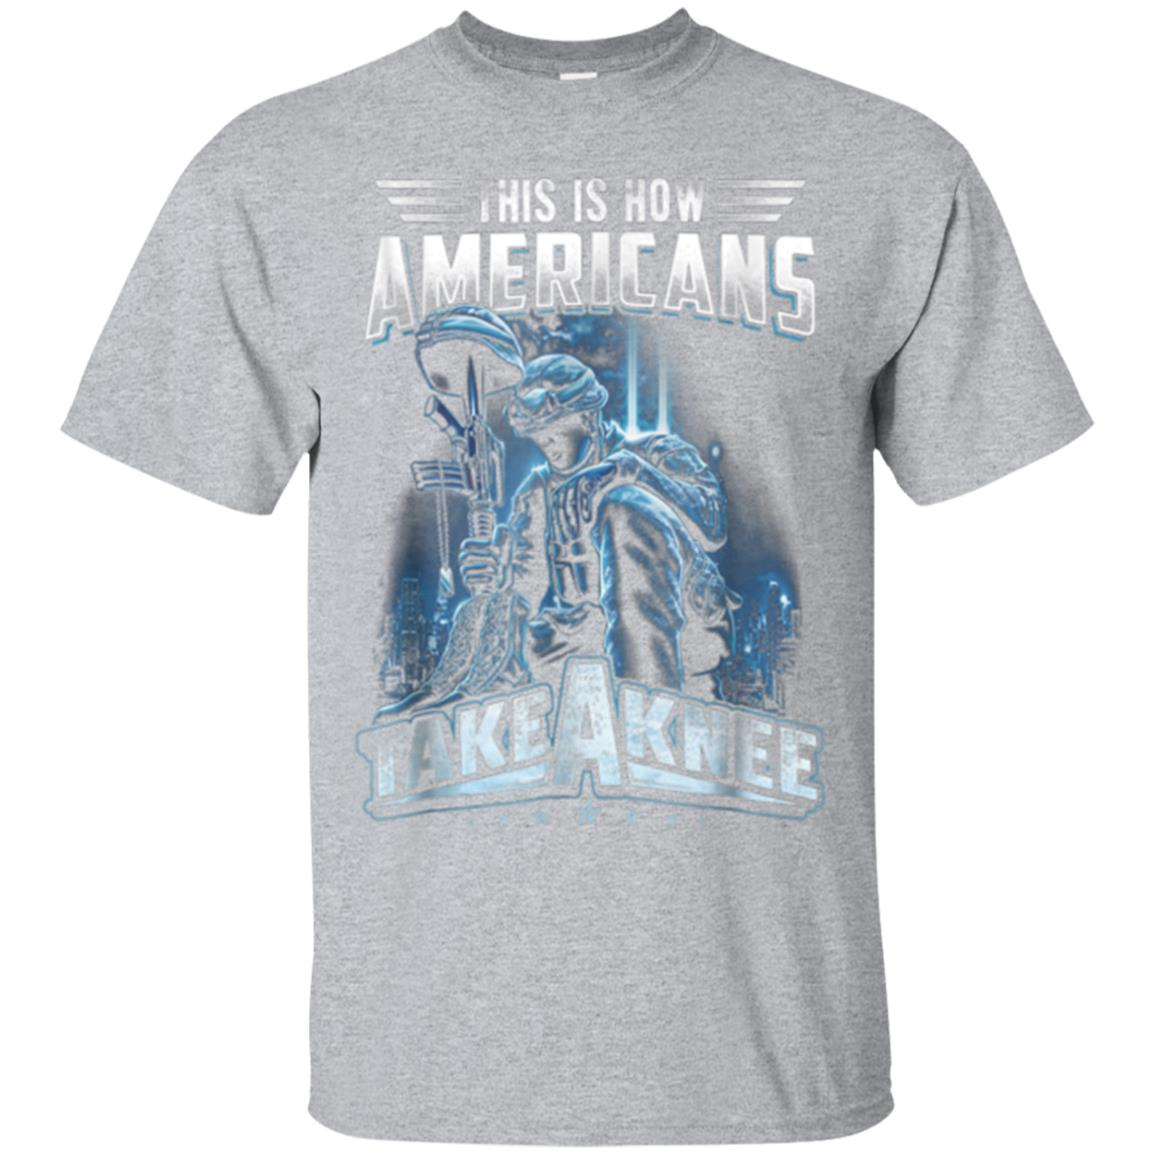 This Is How Americans Take A Knee Shirt Veteran's Day Gift 99promocode